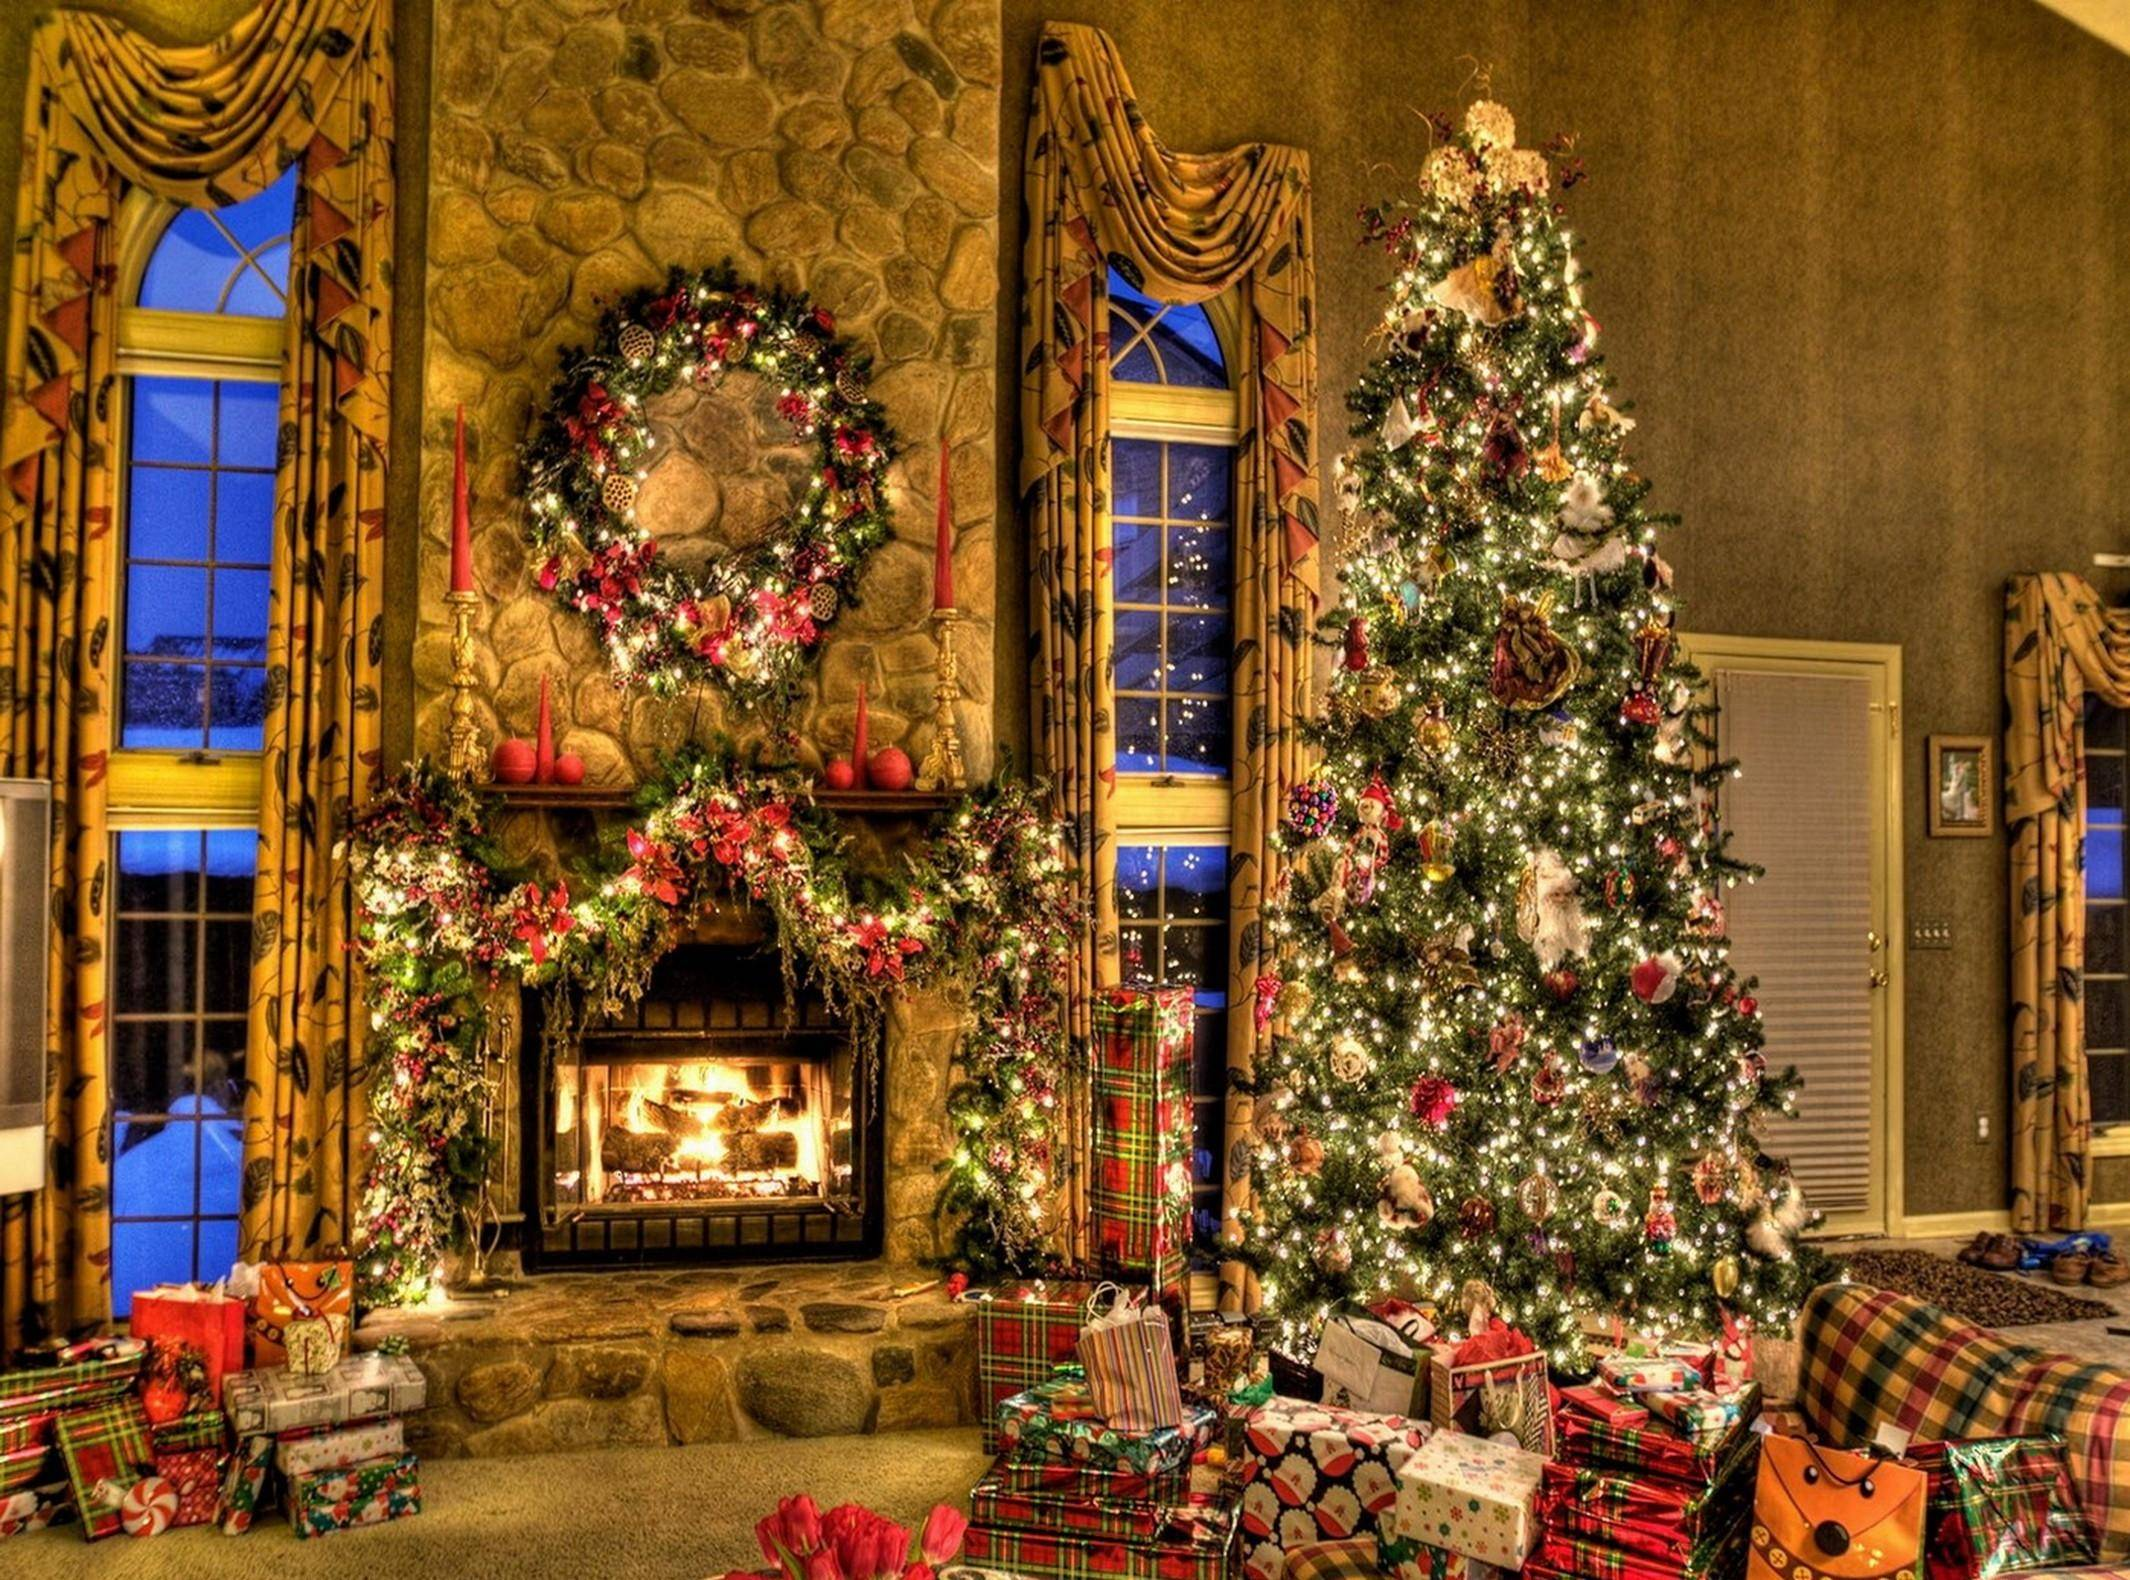 Com Christmas Fireplace Wallpapers Iphone Wallpapers Html Filesize